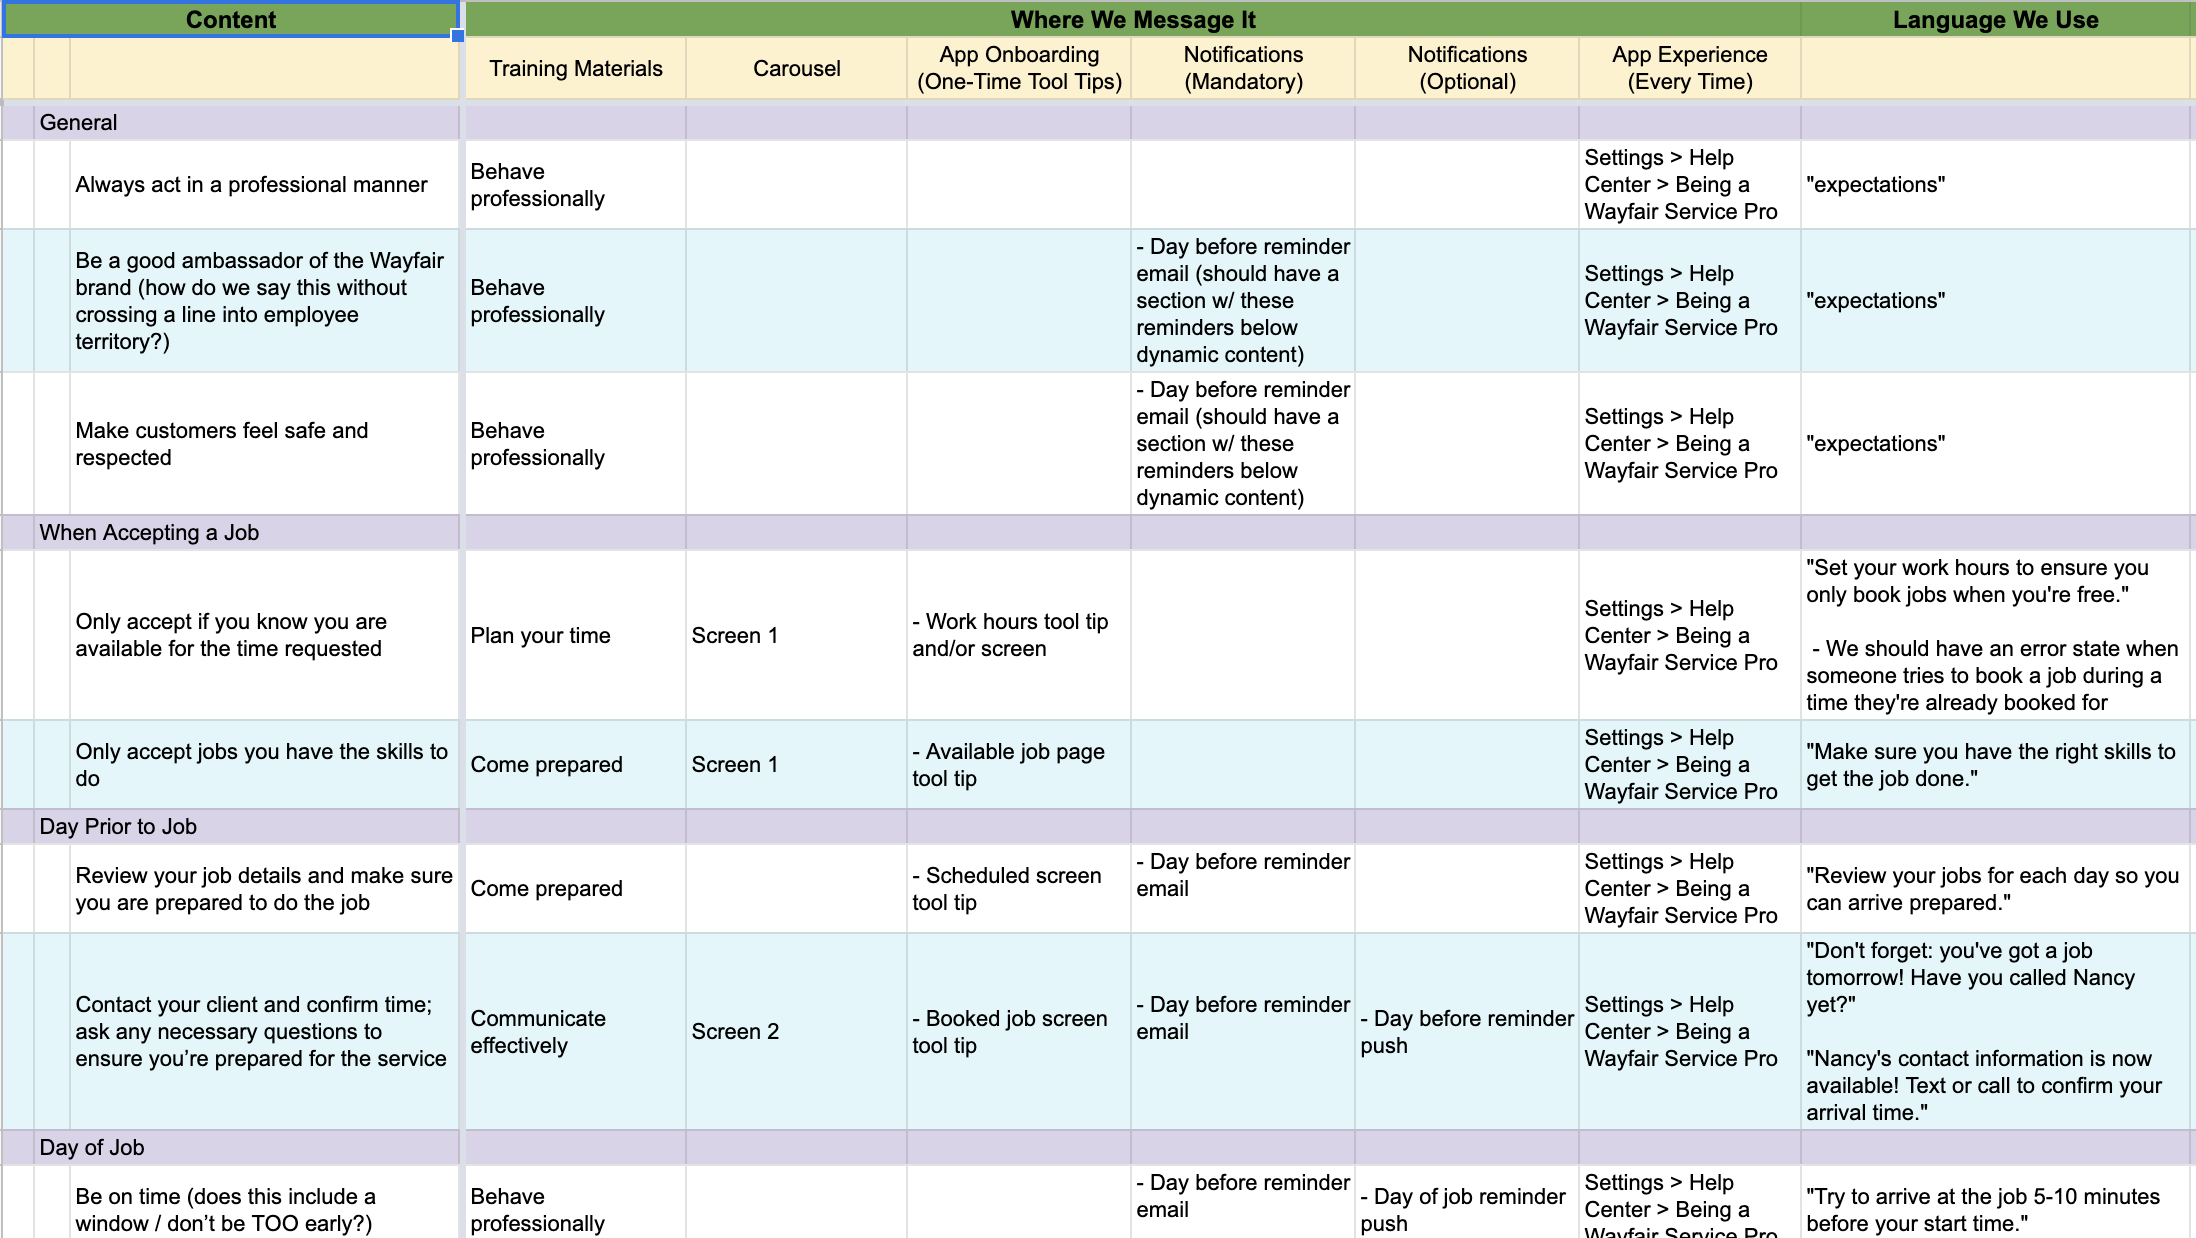 blue and purple spreadsheet showing what content appears at various stages and on what platforms